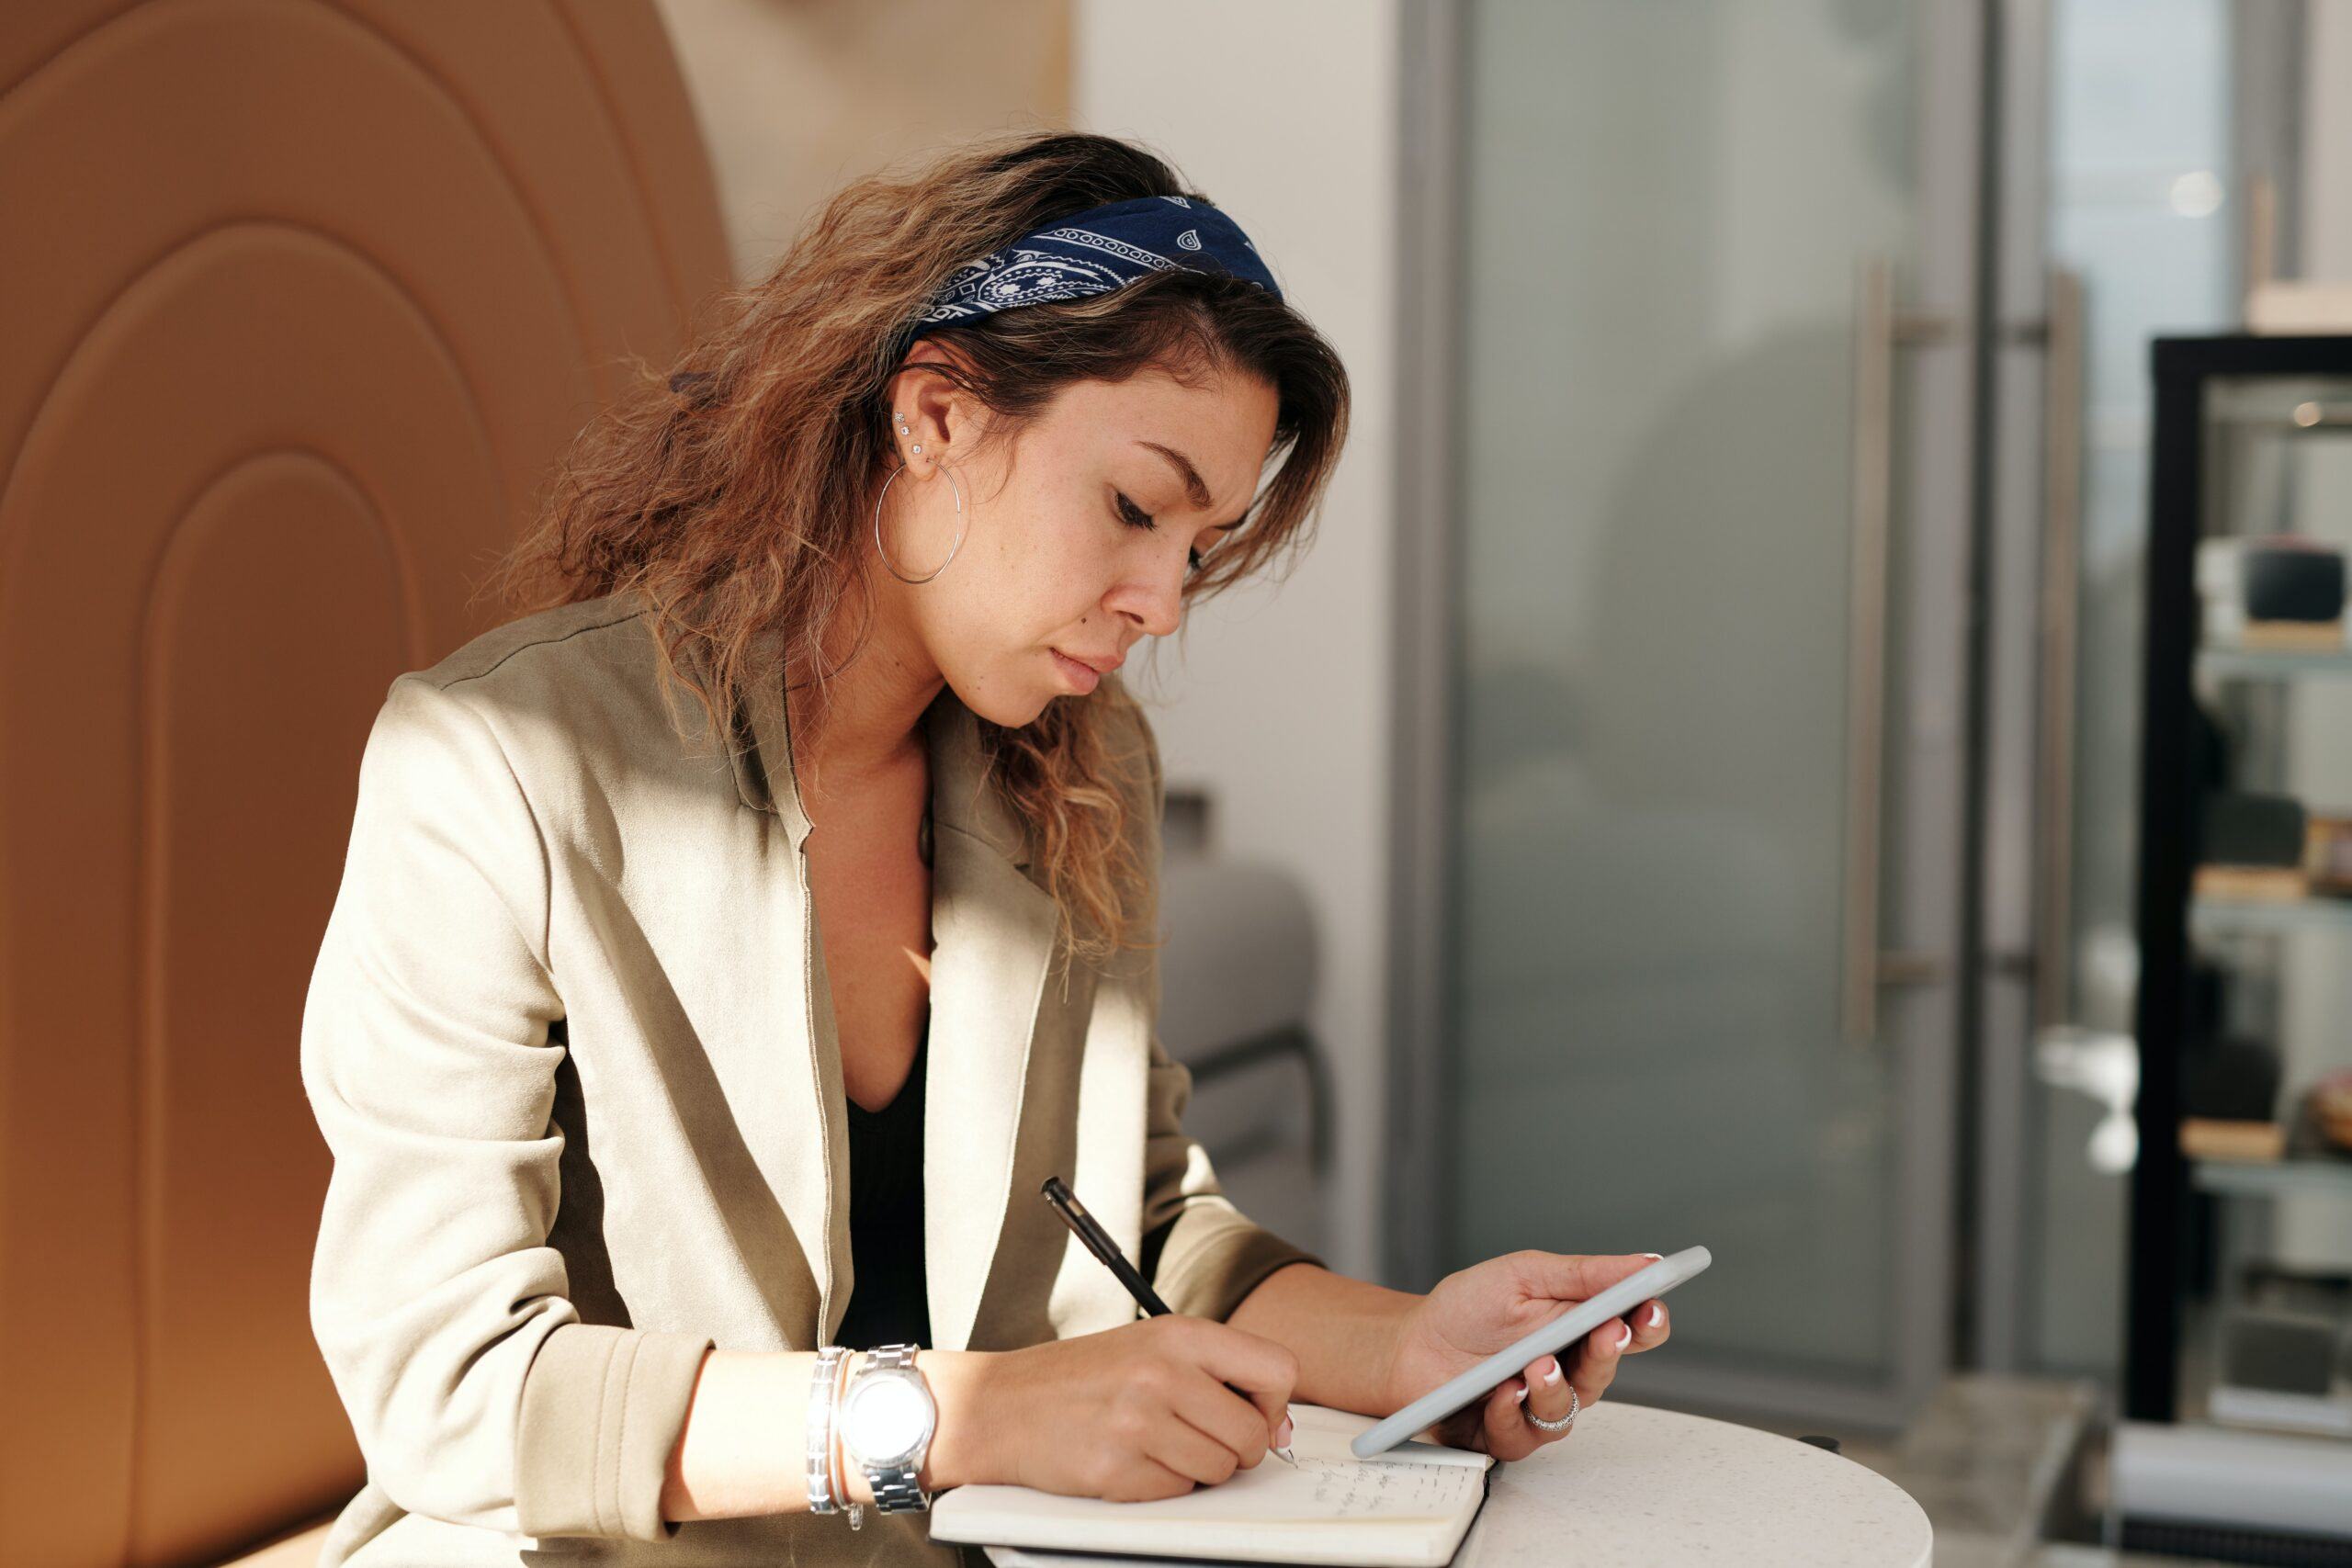 woman looking down at calculations